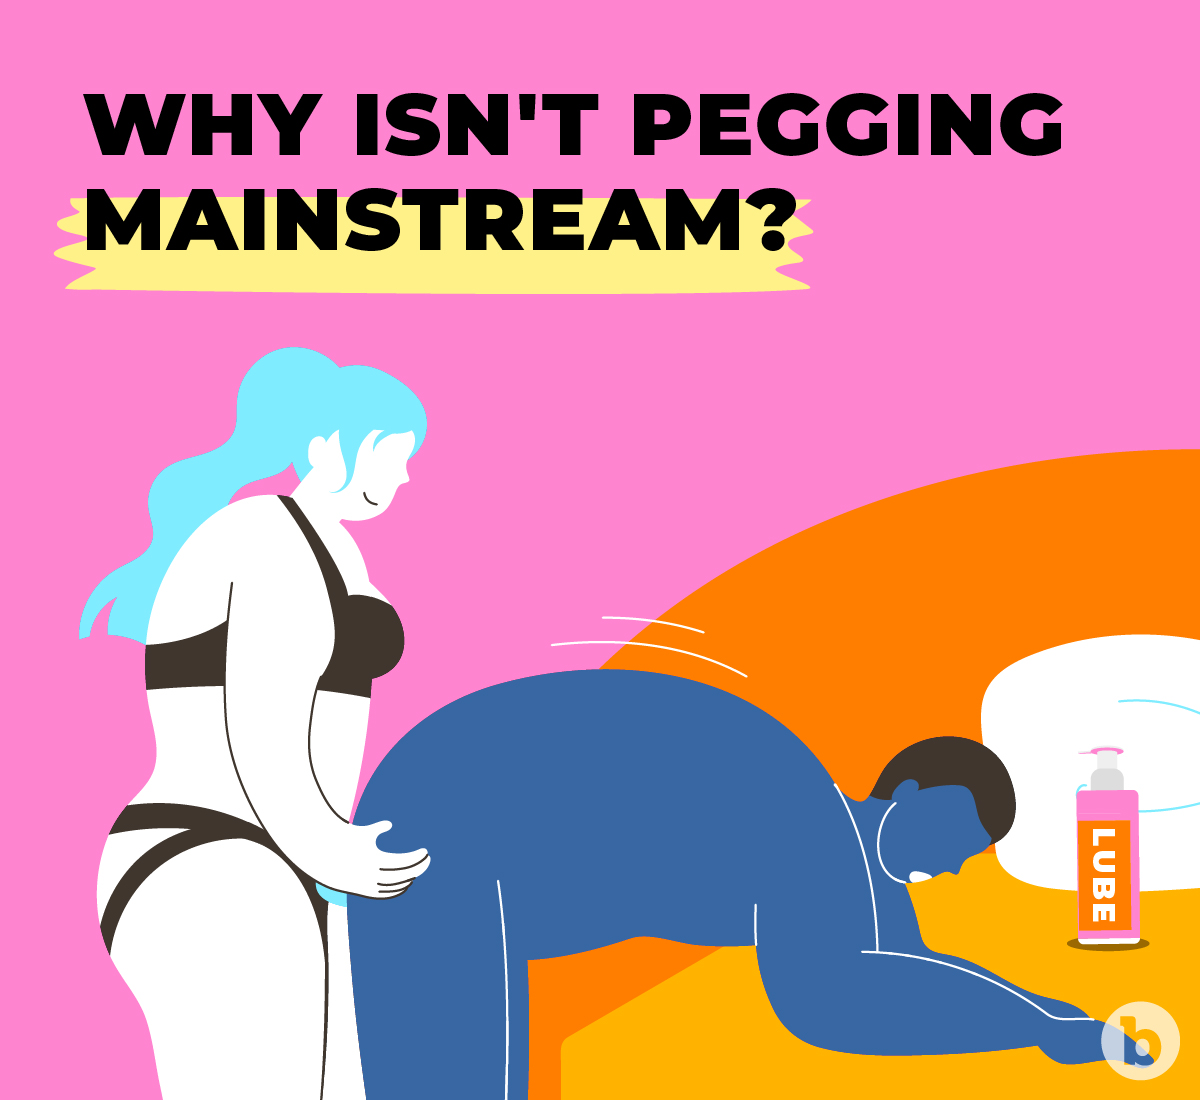 The stigma around anal play has hindered pegging from going mainstream